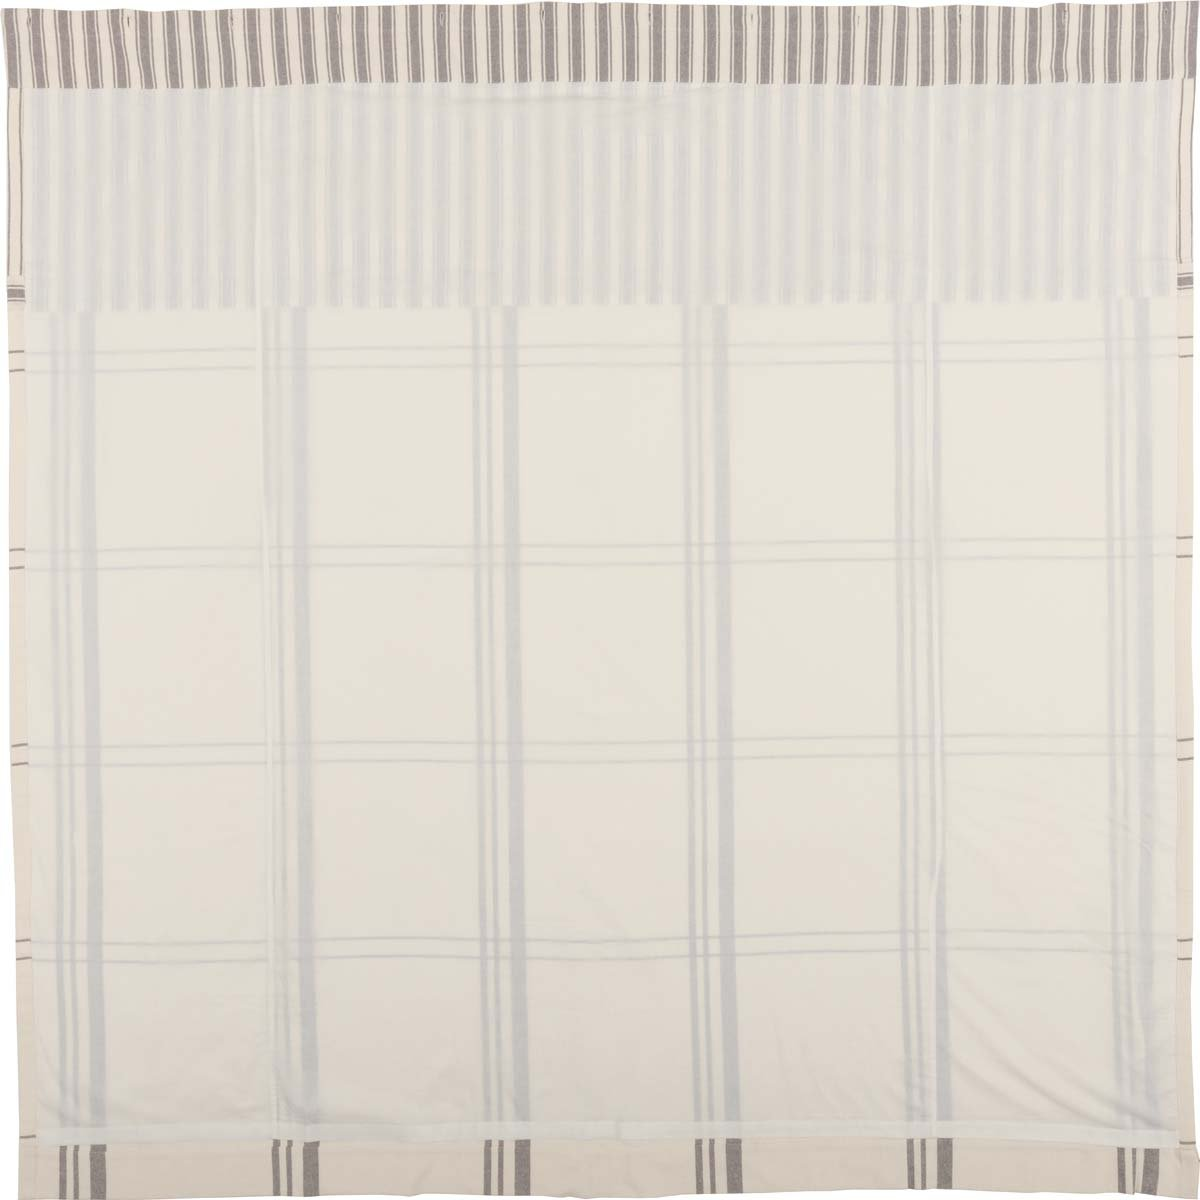 Piper Classics Market Place Shower Curtain, 72'' x 72'', Ticking Stripe w/Grey & Cream Plaid by Piper Classics (Image #3)